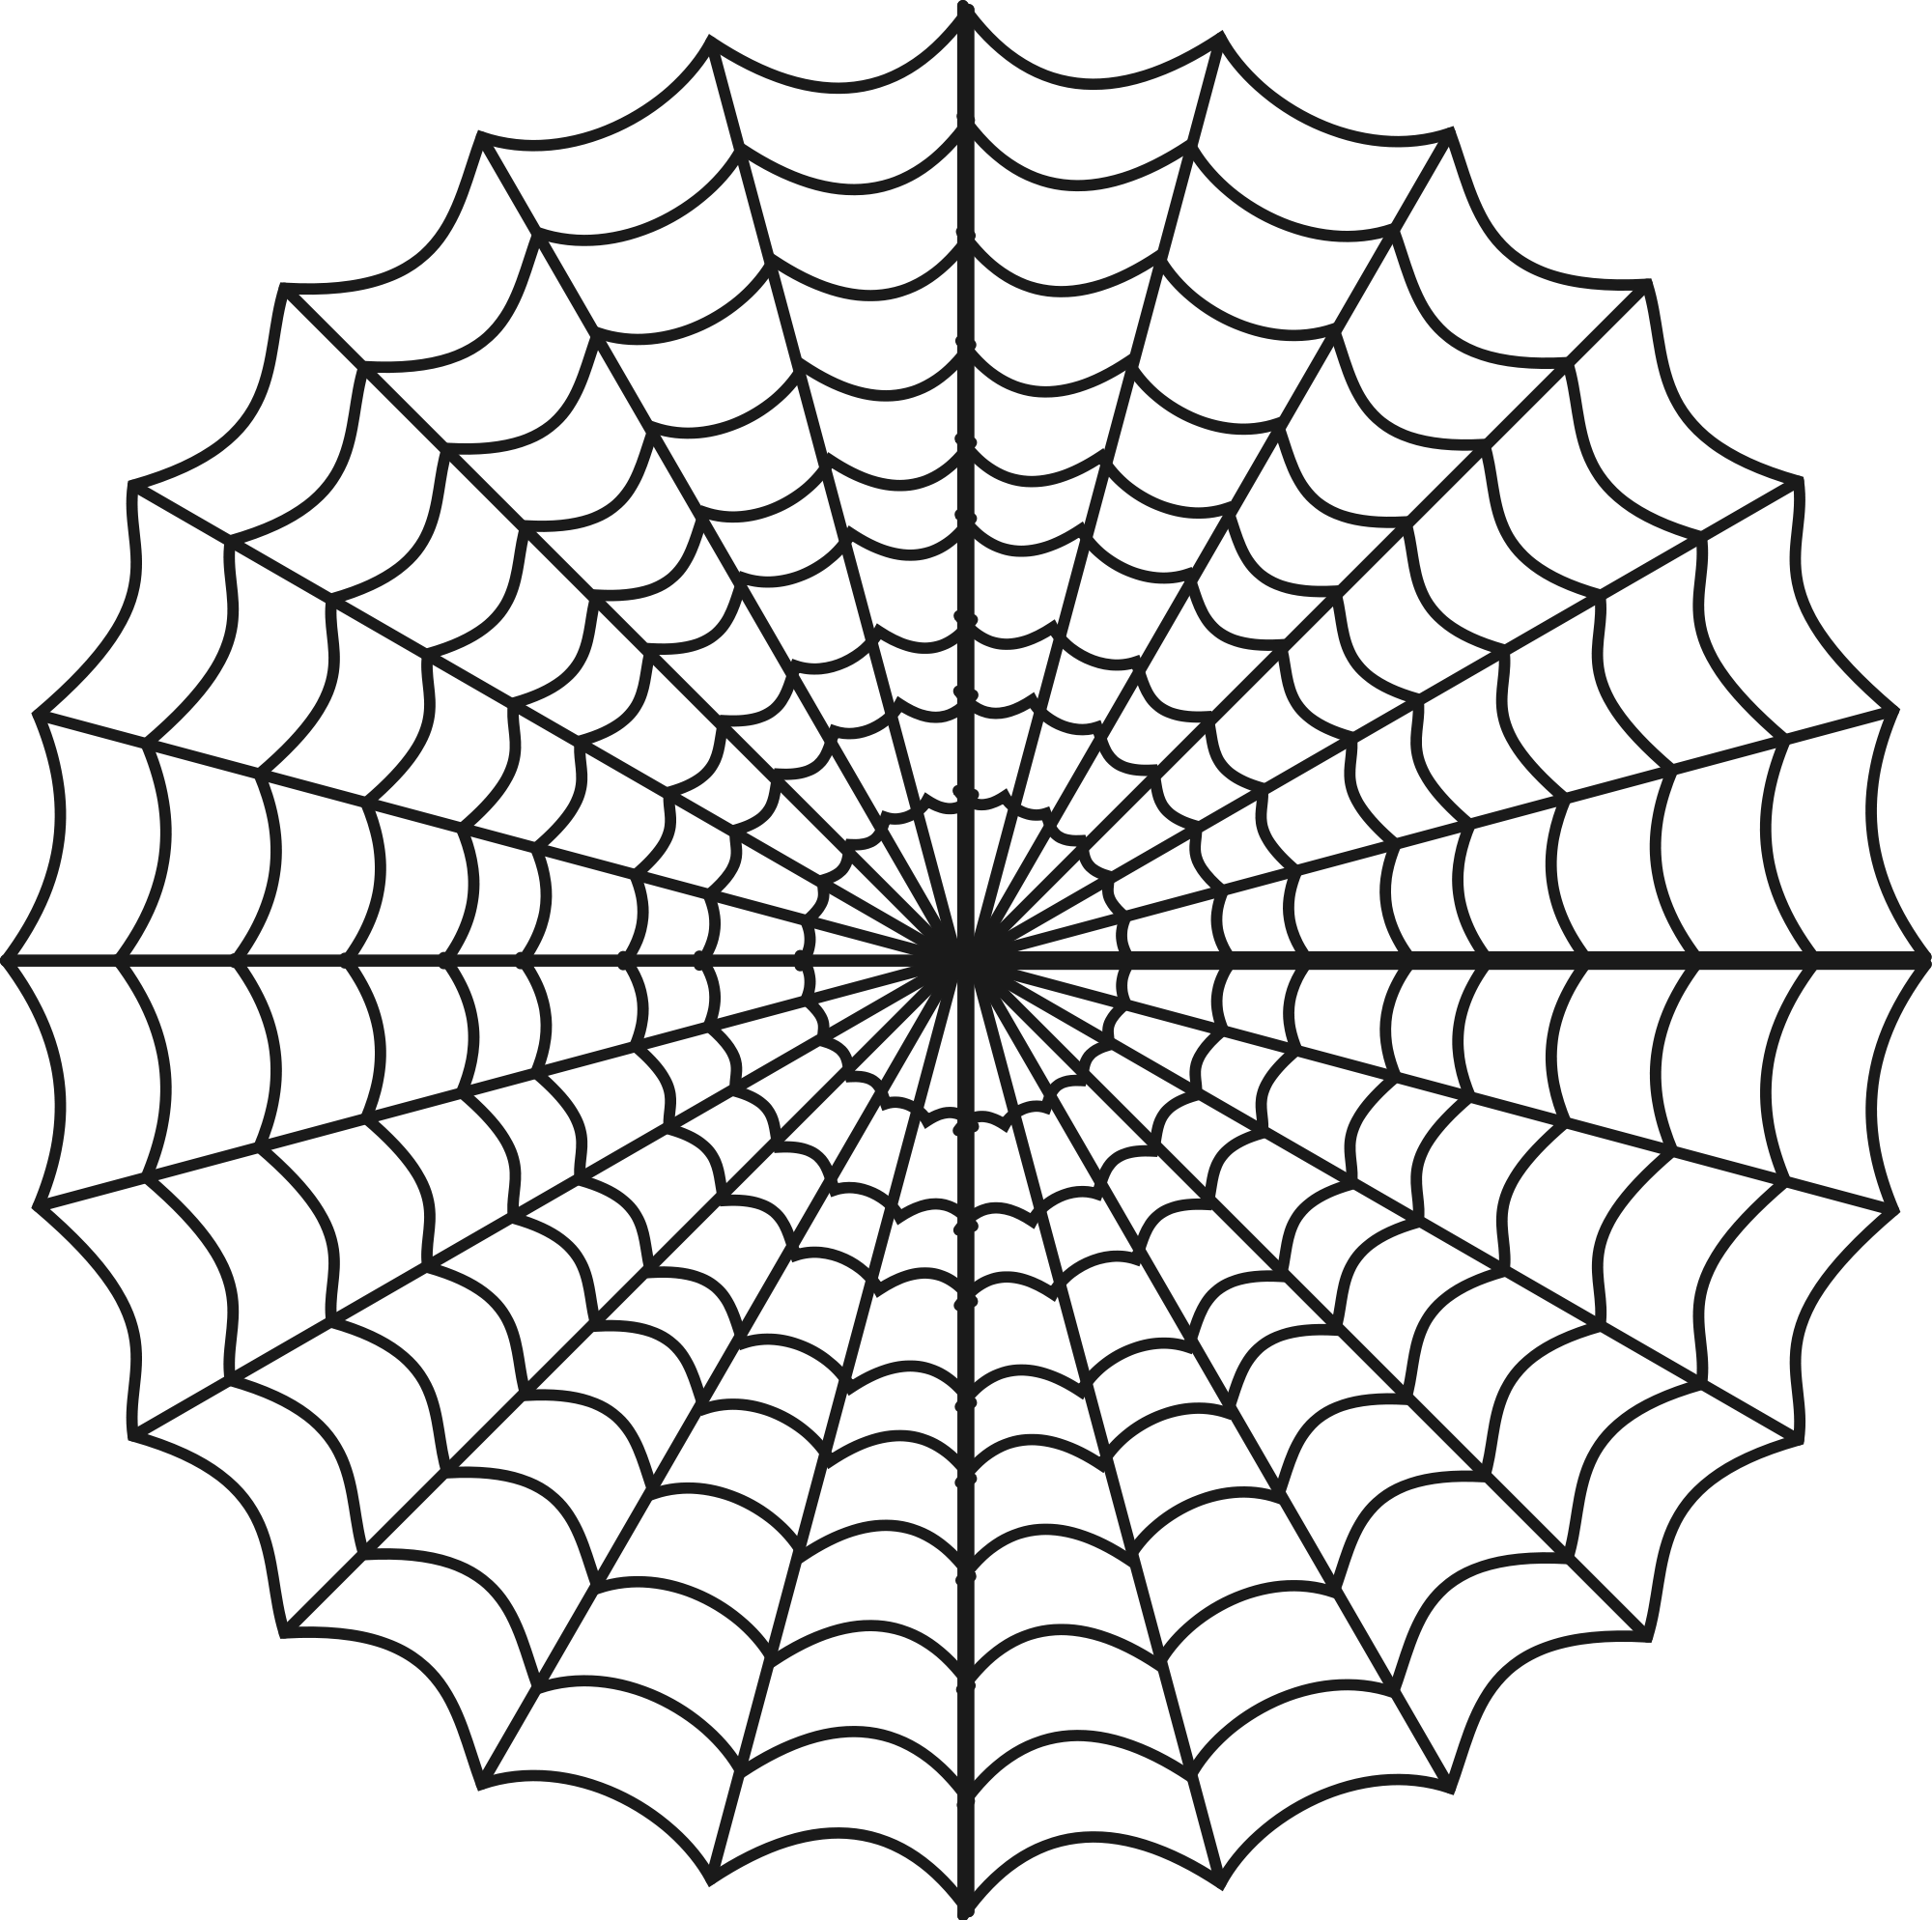 White spider web png. File spiders svg wikimedia